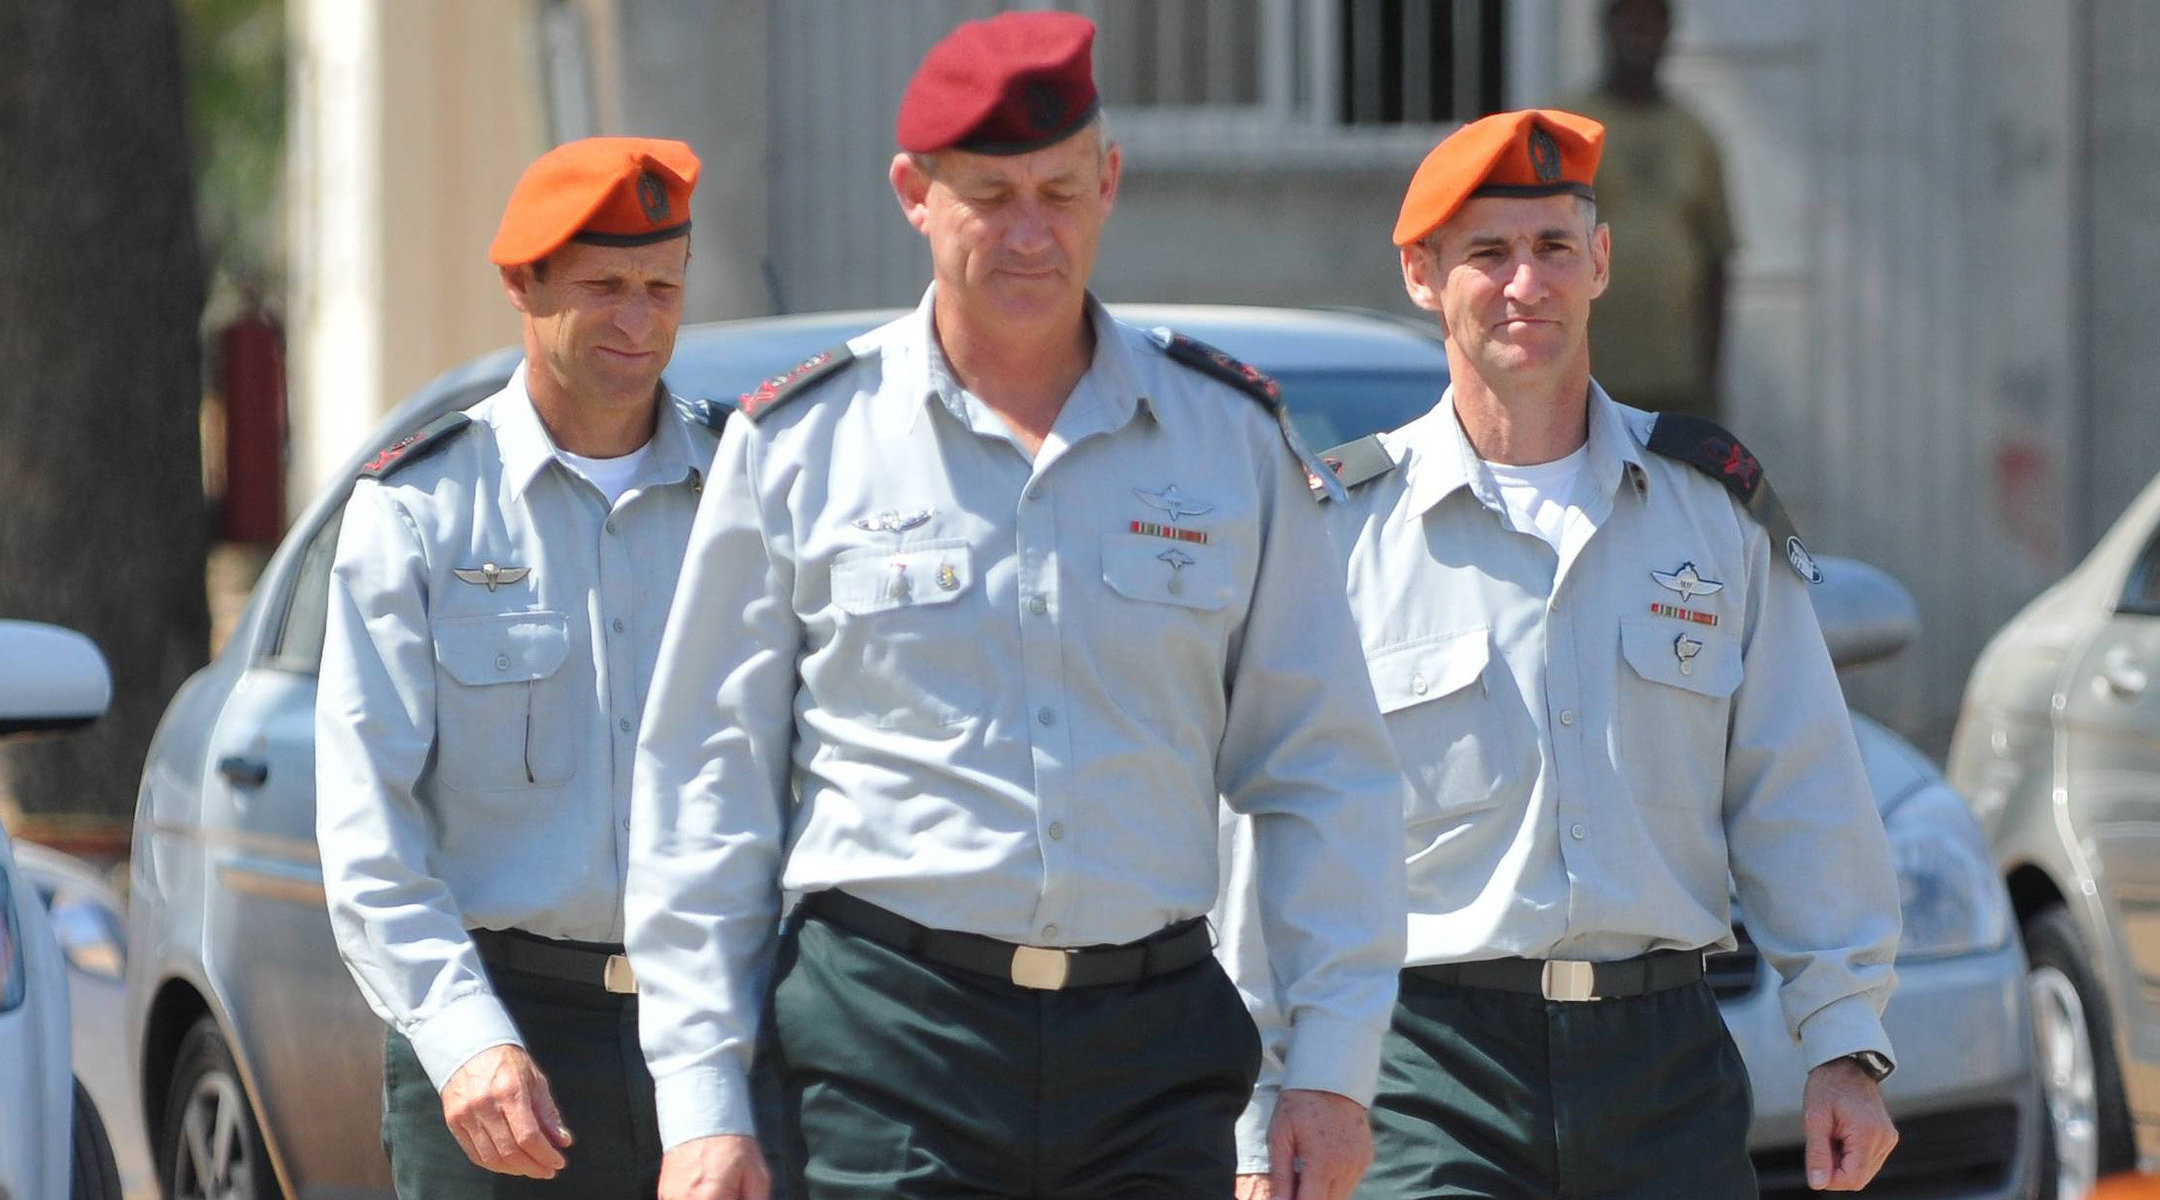 Chief-of-Staff Benny Gantz walks in front of the outgoing head of the Home Front Command, Yair Golan (right), and incoming Brigadier-General Eyal Eisenberg on June 15, 2011. (Yossi Zeliger/Flash90)